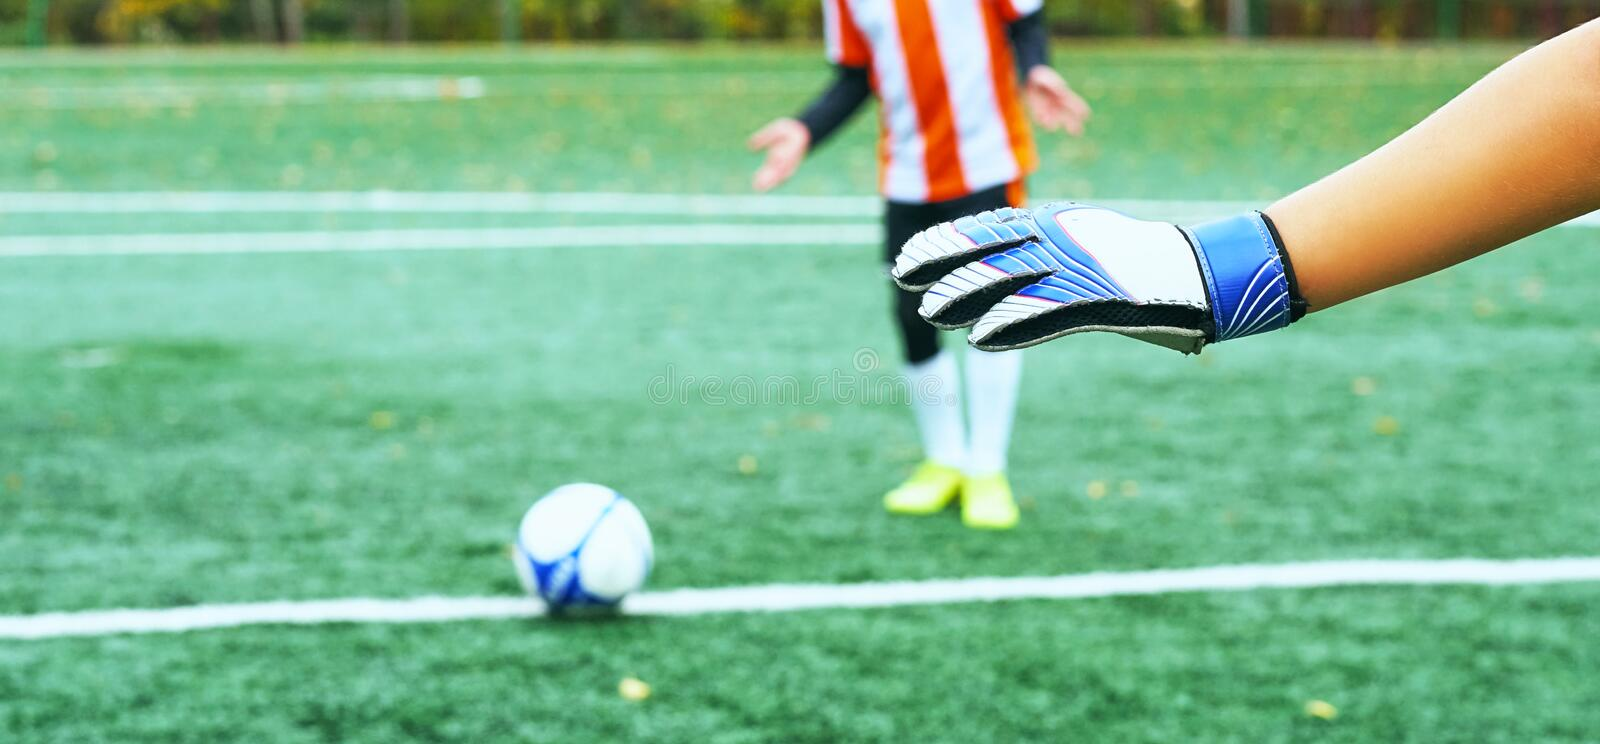 Young blurred soccer player taking a penalty kick against goal net. royalty free stock photos